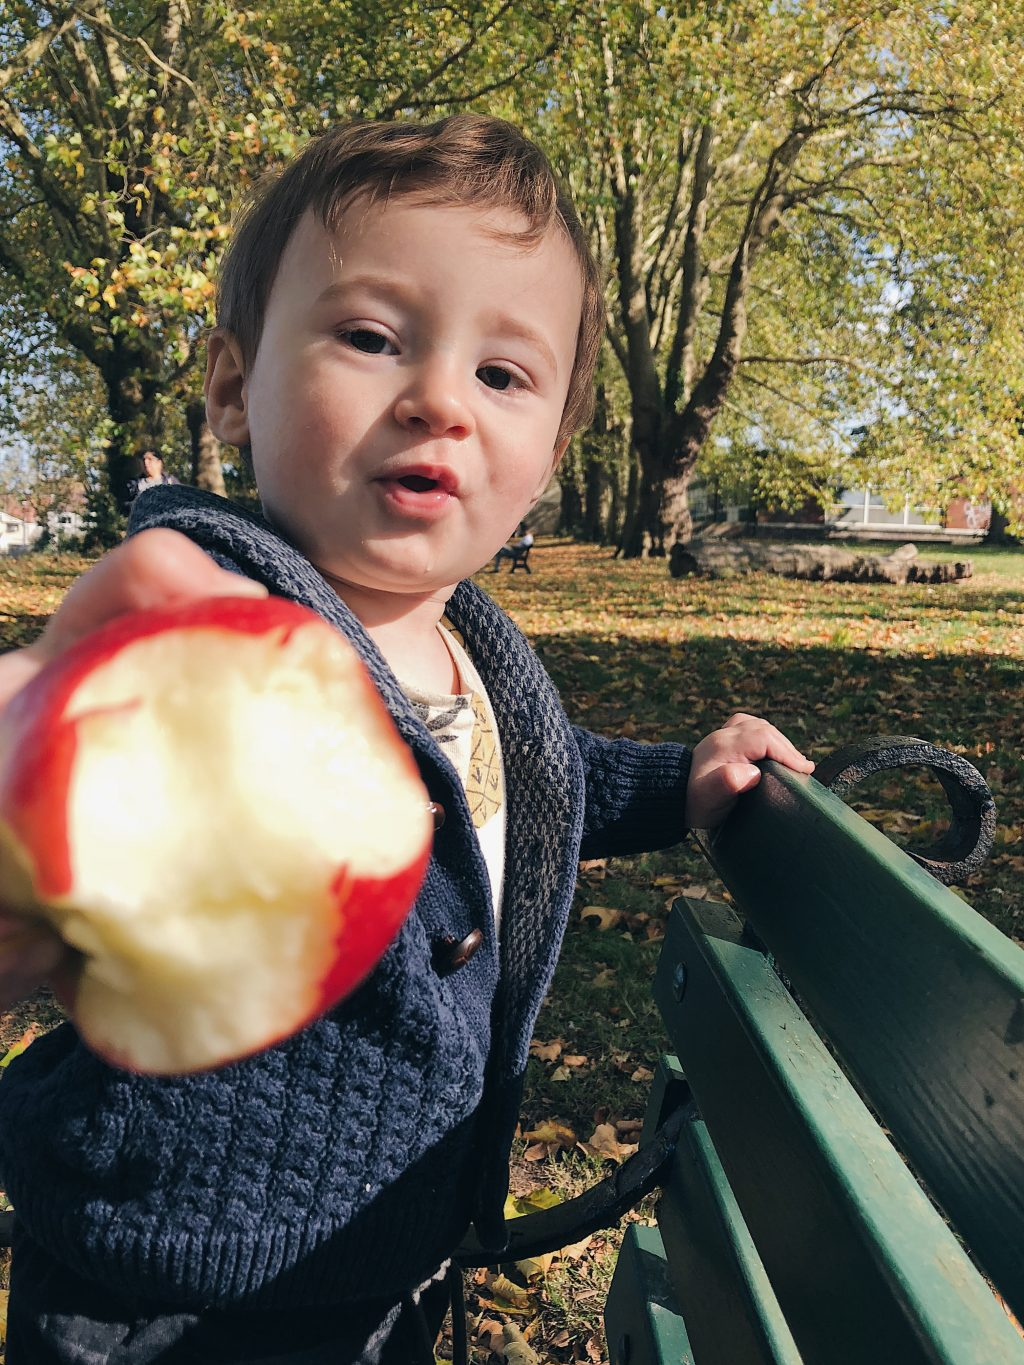 portrait of a 10 month old baby eating an apple on a park bench